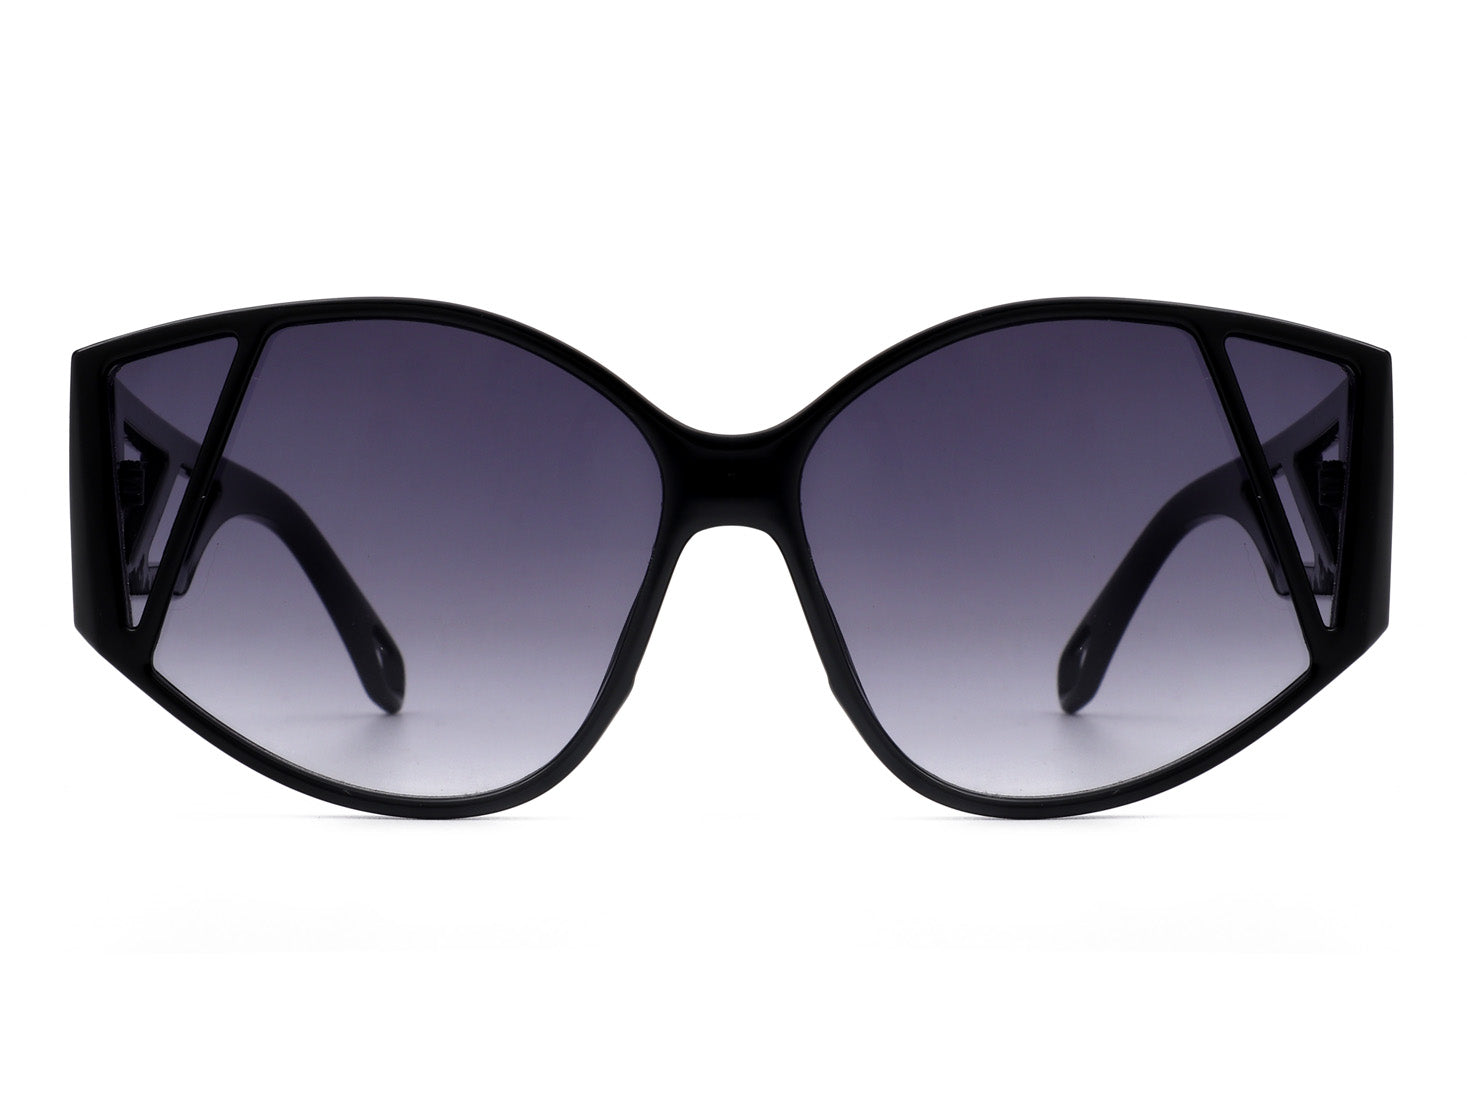 HS1007 - Women Geometric Round Cat Eye Fashion Sunglasses